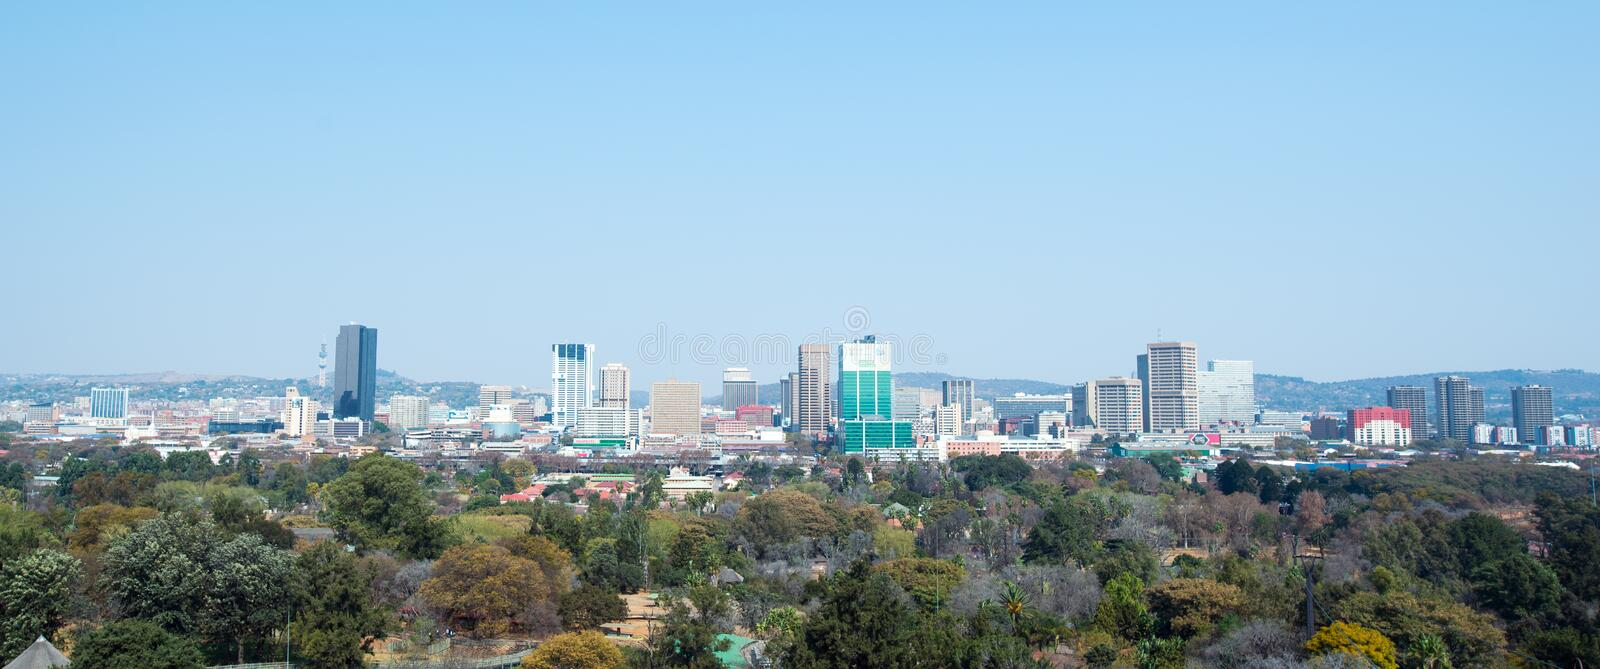 Downtown Pretoria, Gauteng, South Africa. A panoramic image of of the centre of Pretoria, Gauteng, South Africa. There are a huge amount of trees in Pretoria royalty free stock image